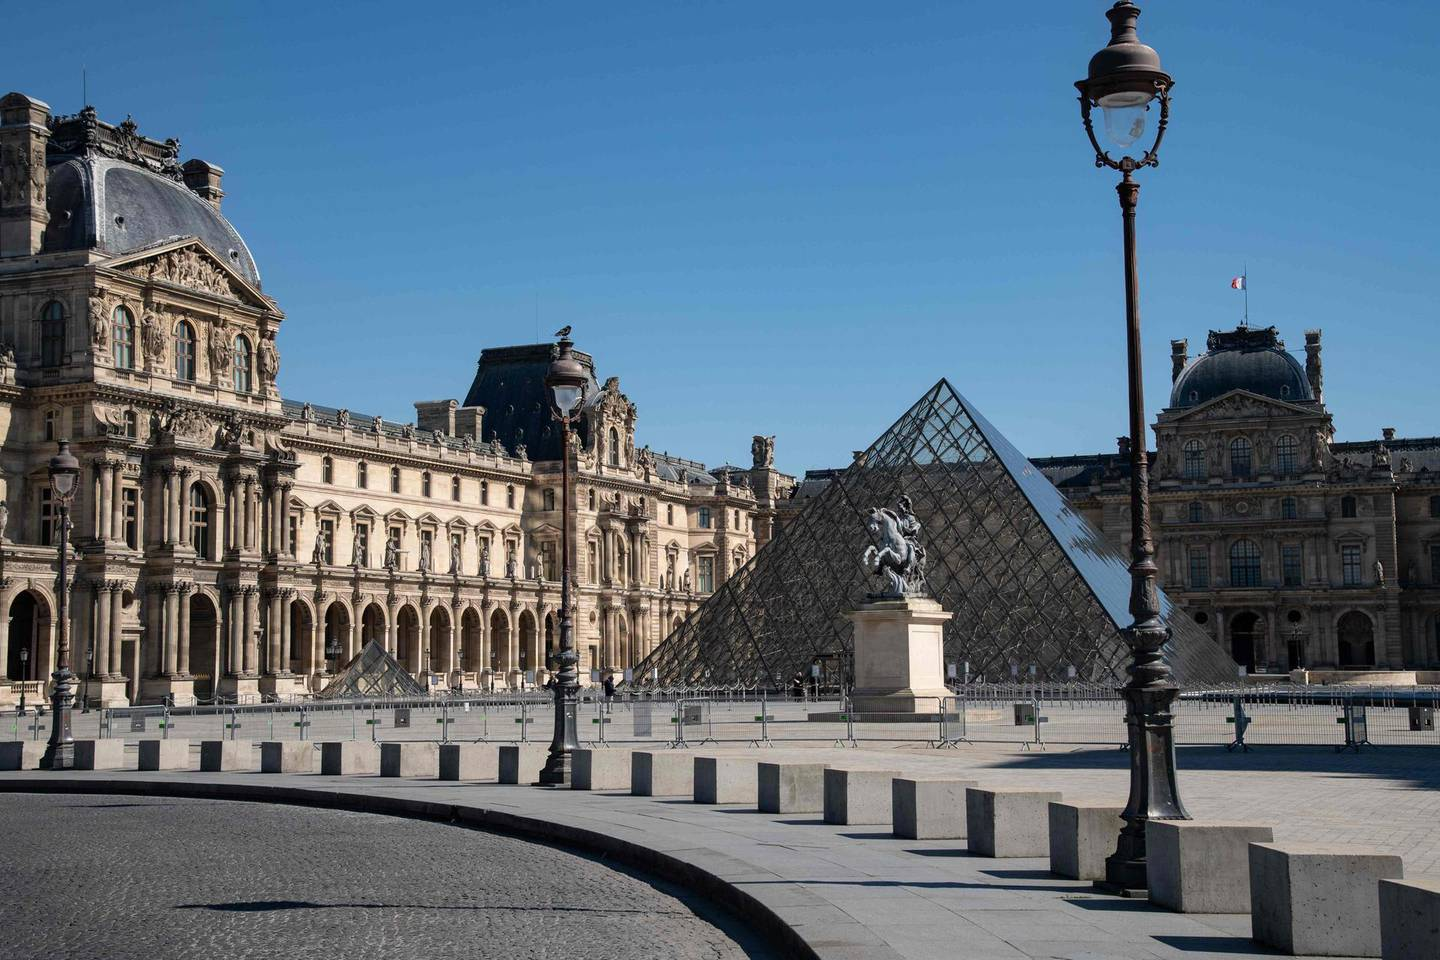 A picture taken on March 23, 2020, in Paris, shows the Louvre pyramid designed by Ieoh Ming Pei, on the seven day of a strict lockdown in France aimed at curbing the spread of COVID-19 caused by the novel coronavirus. RESTRICTED TO EDITORIAL USE - MANDATORY MENTION OF THE ARTIST UPON PUBLICATION - TO ILLUSTRATE THE EVENT AS SPECIFIED IN THE CAPTION  / AFP / BERTRAND GUAY / RESTRICTED TO EDITORIAL USE - MANDATORY MENTION OF THE ARTIST UPON PUBLICATION - TO ILLUSTRATE THE EVENT AS SPECIFIED IN THE CAPTION